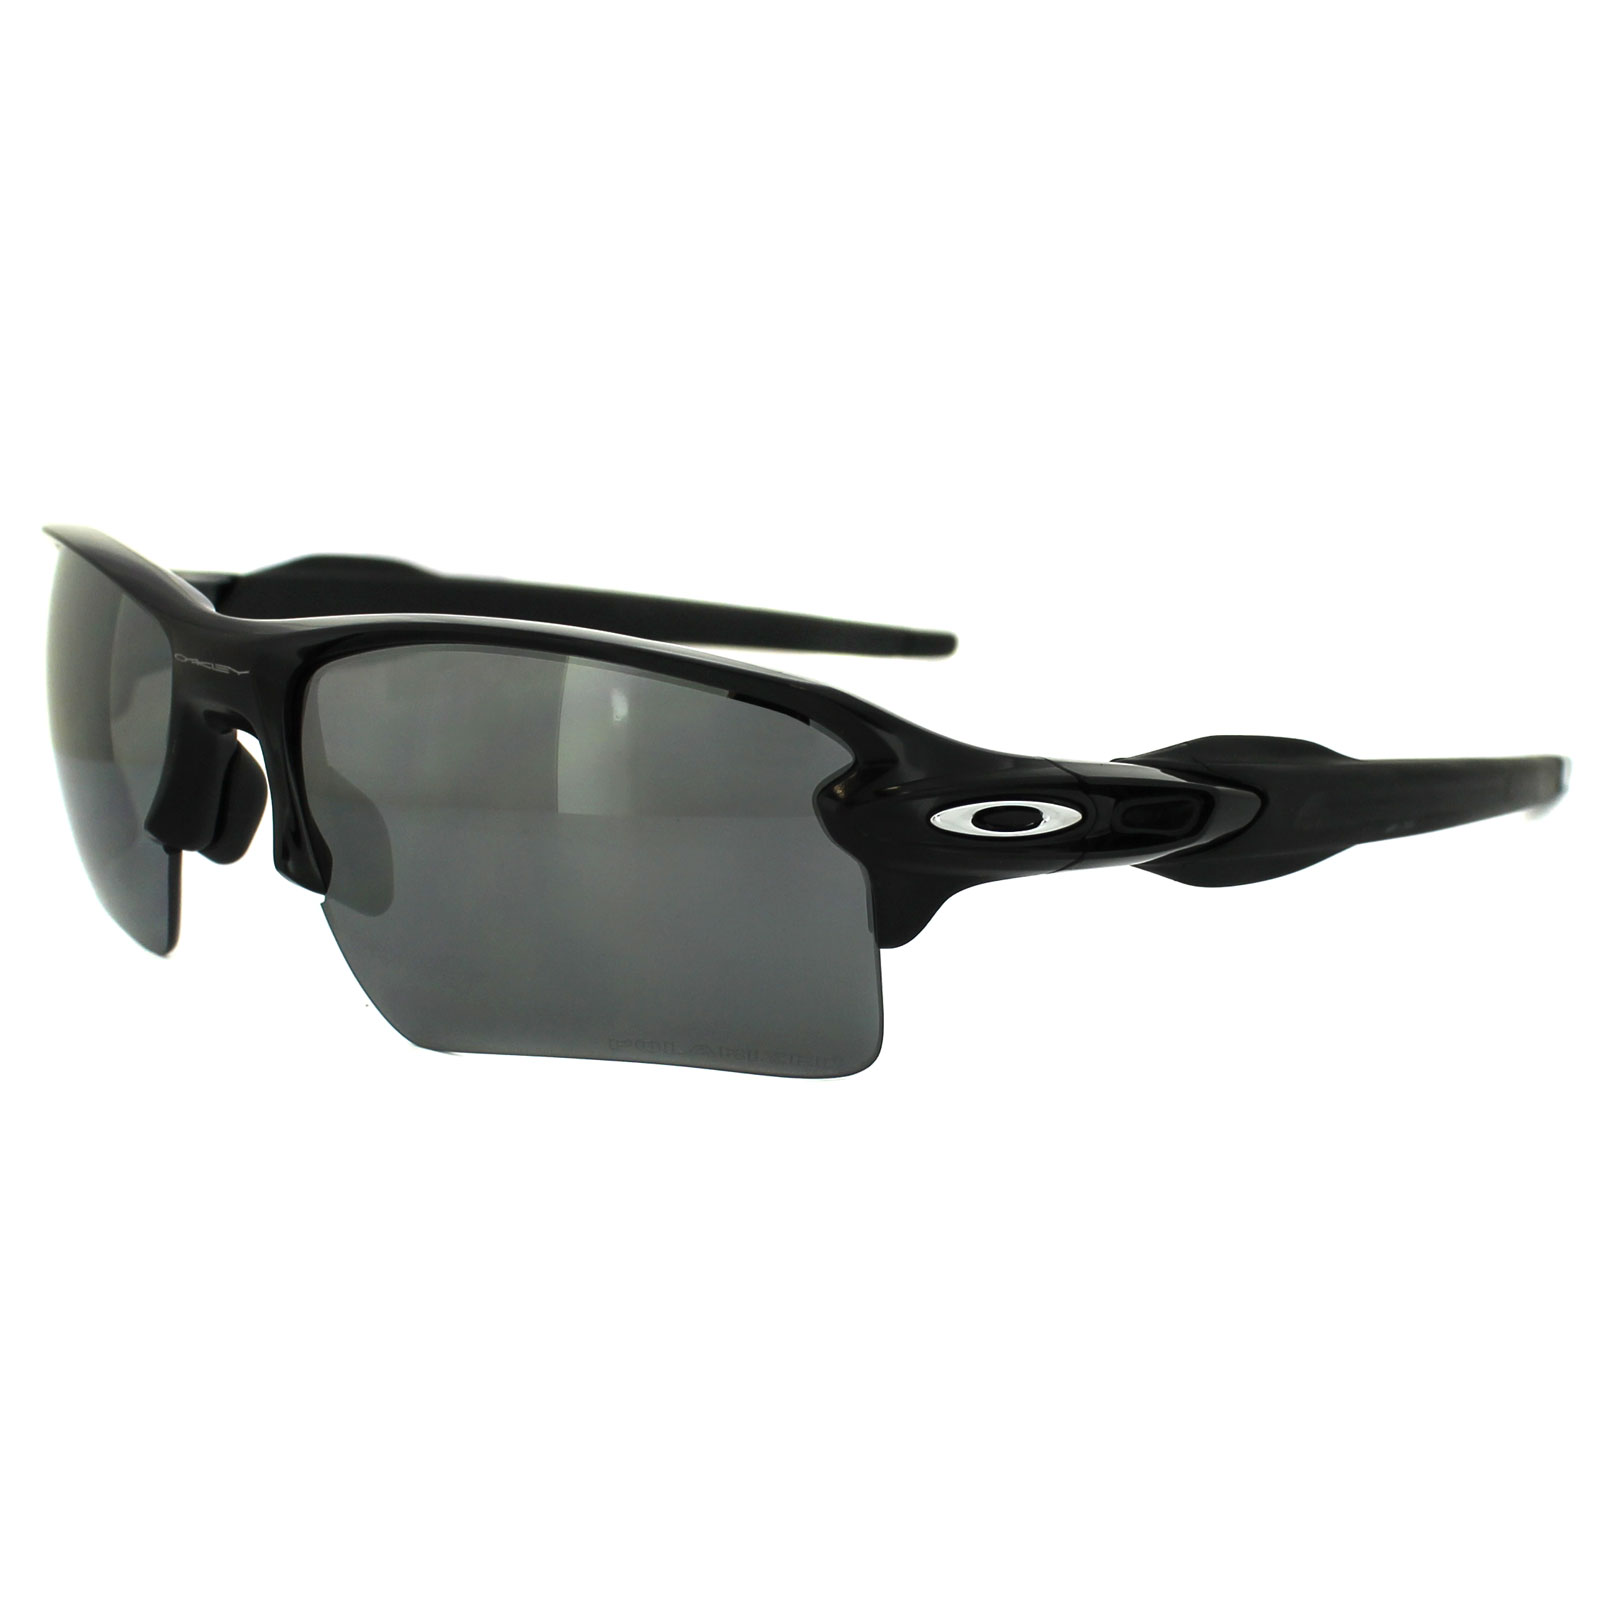 ed5a37f250 Oakley Flak 2.0 Polarized Sunglasses Polished Black Black Iridium ...